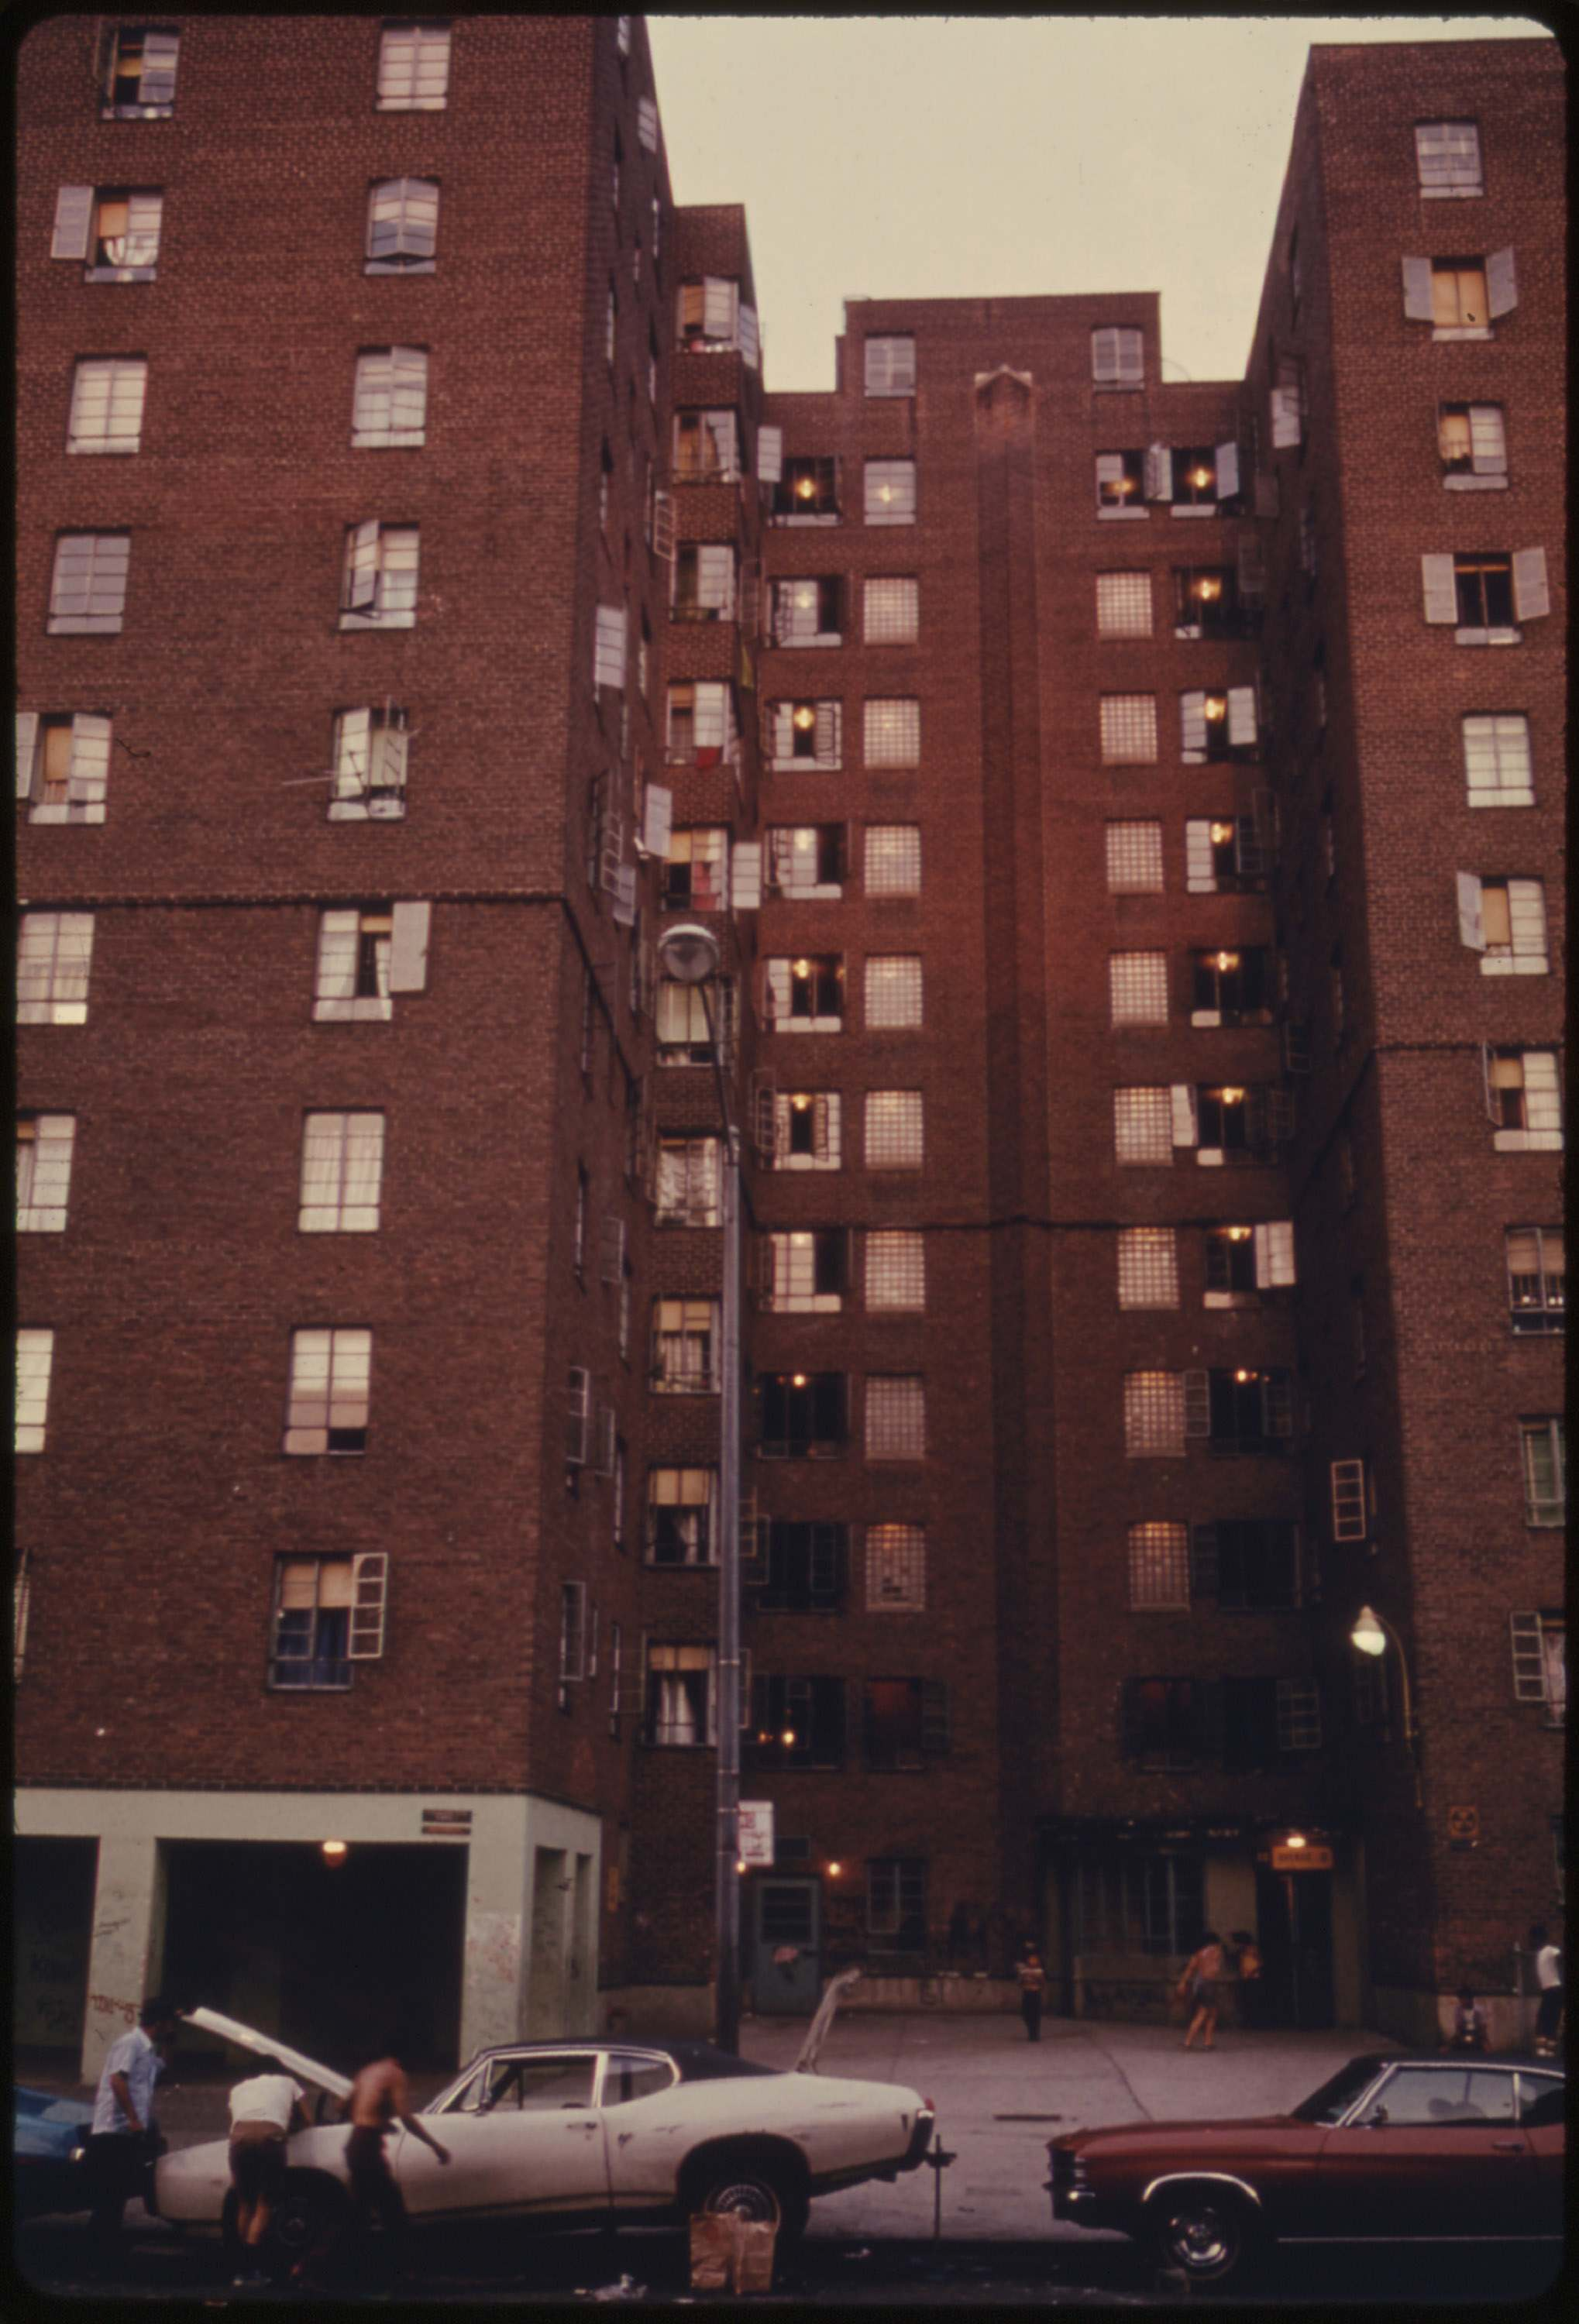 Avenue D housing project on the Lower East side of Manhattan, June 1974.